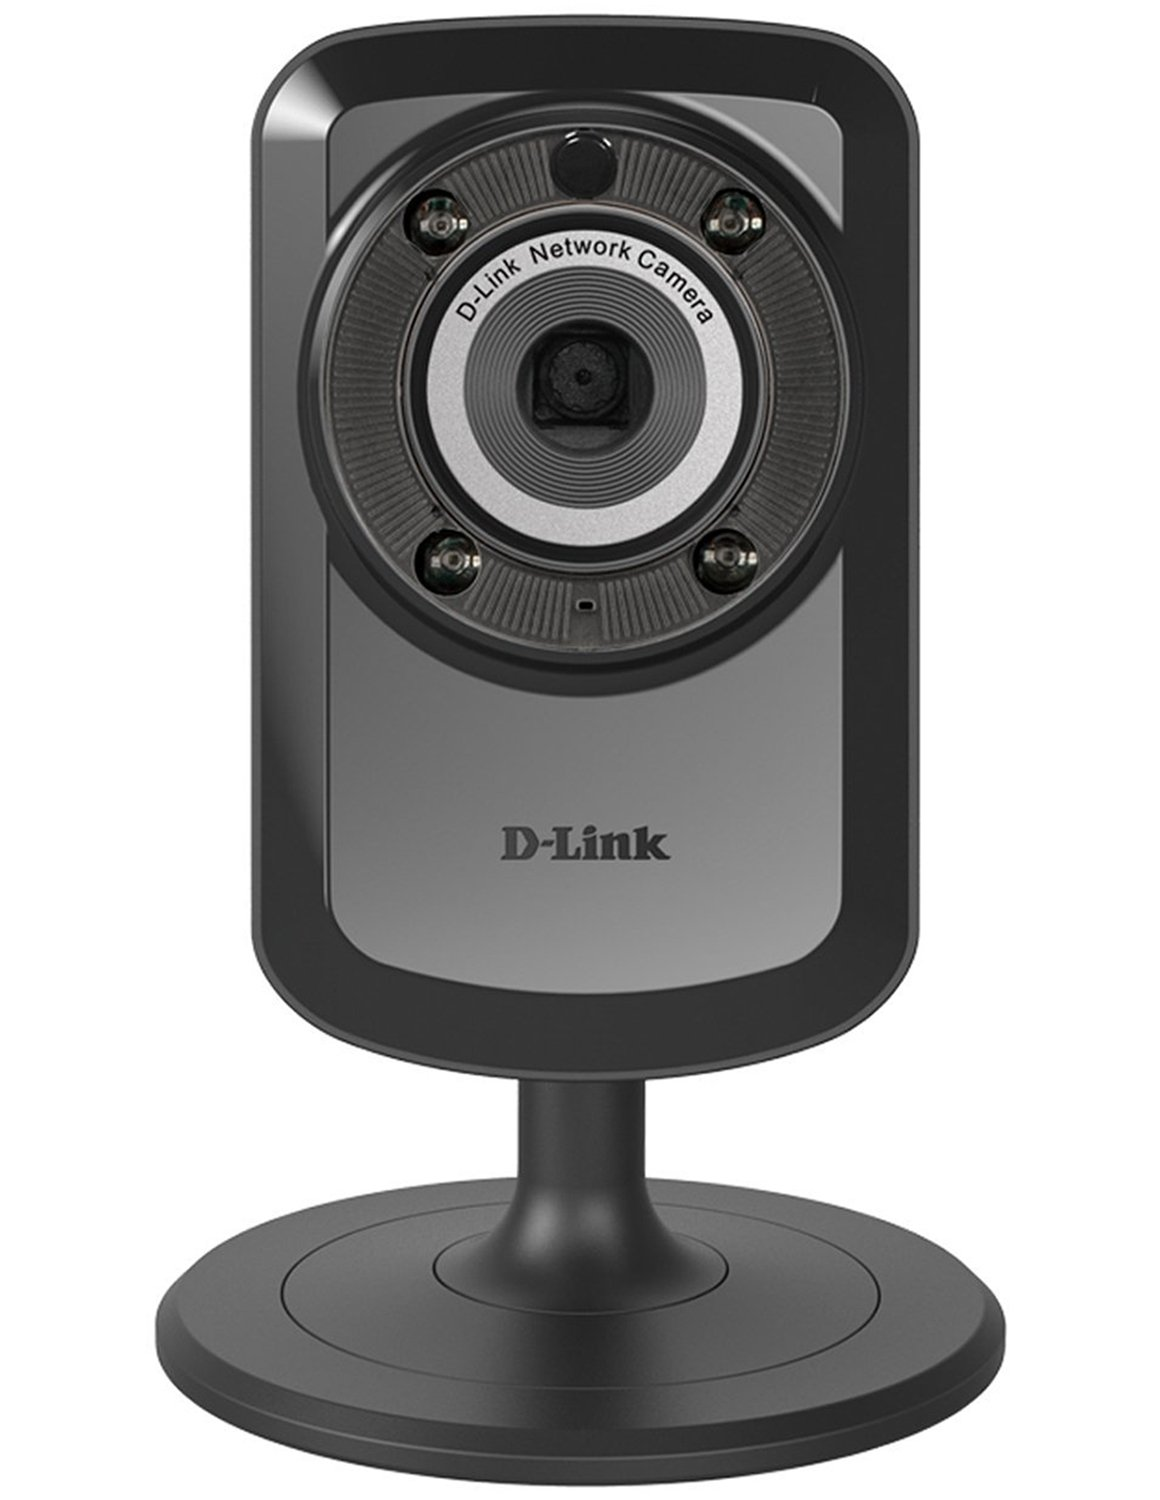 cc5e77f66 ... Peace of Mind Stay connected to everything that you love 24 7 with the D -Link DCS-934LWireless N Day Night home network camera